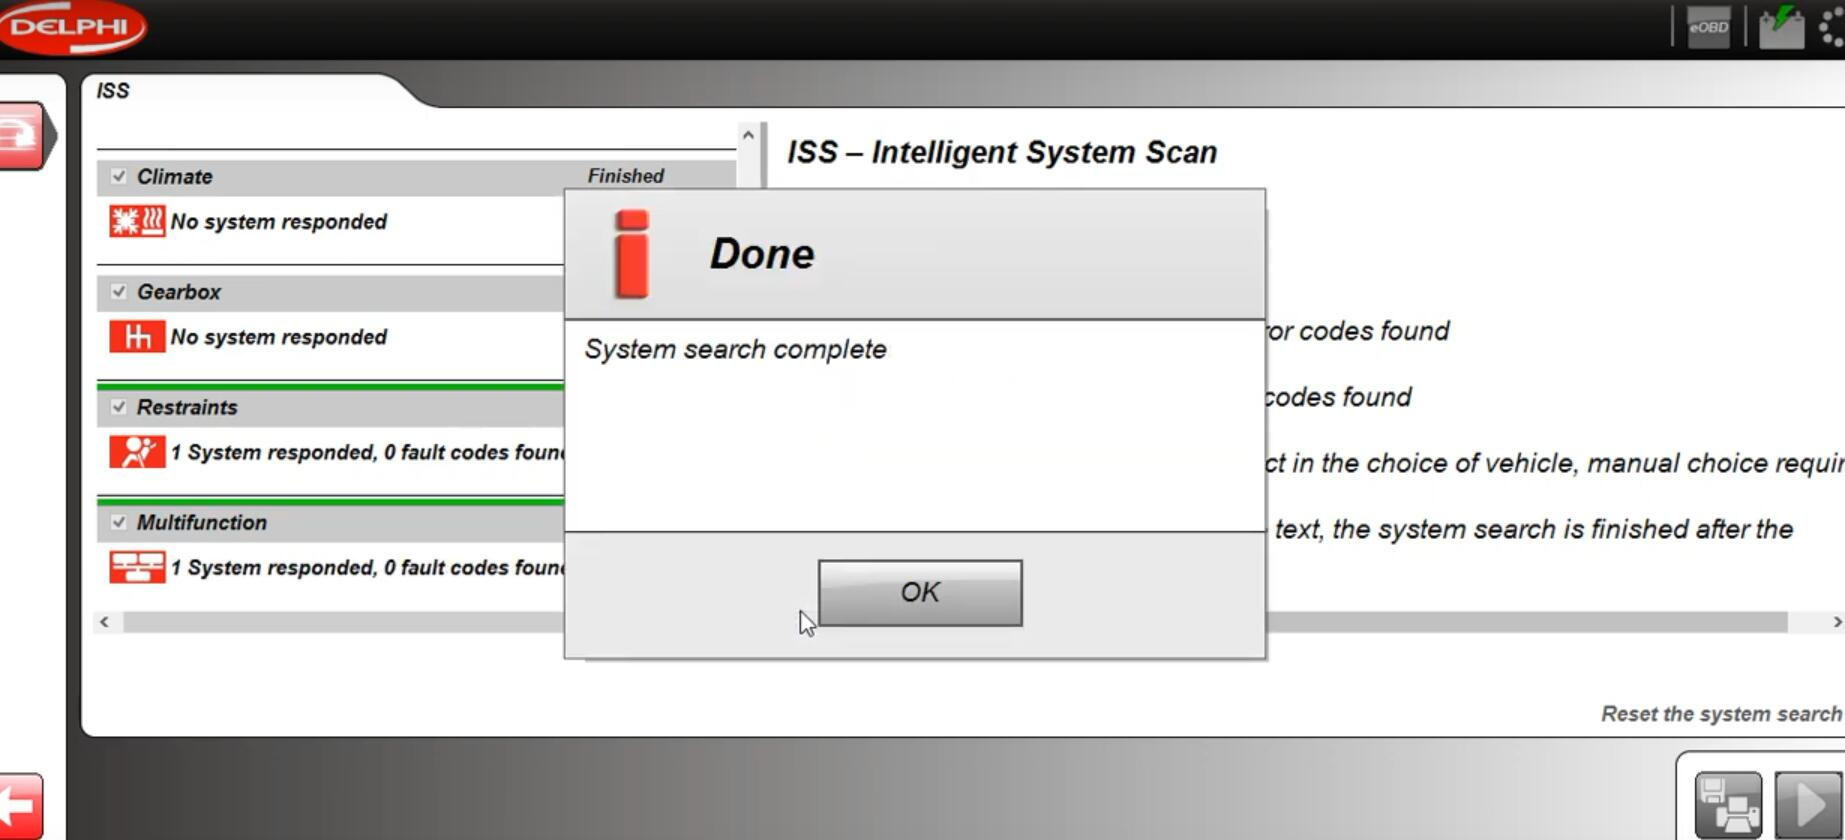 How-to-Scan-ISS-by-Delphi-DS150e-2017-Rev.3-for-2008-Ford-Focus-6